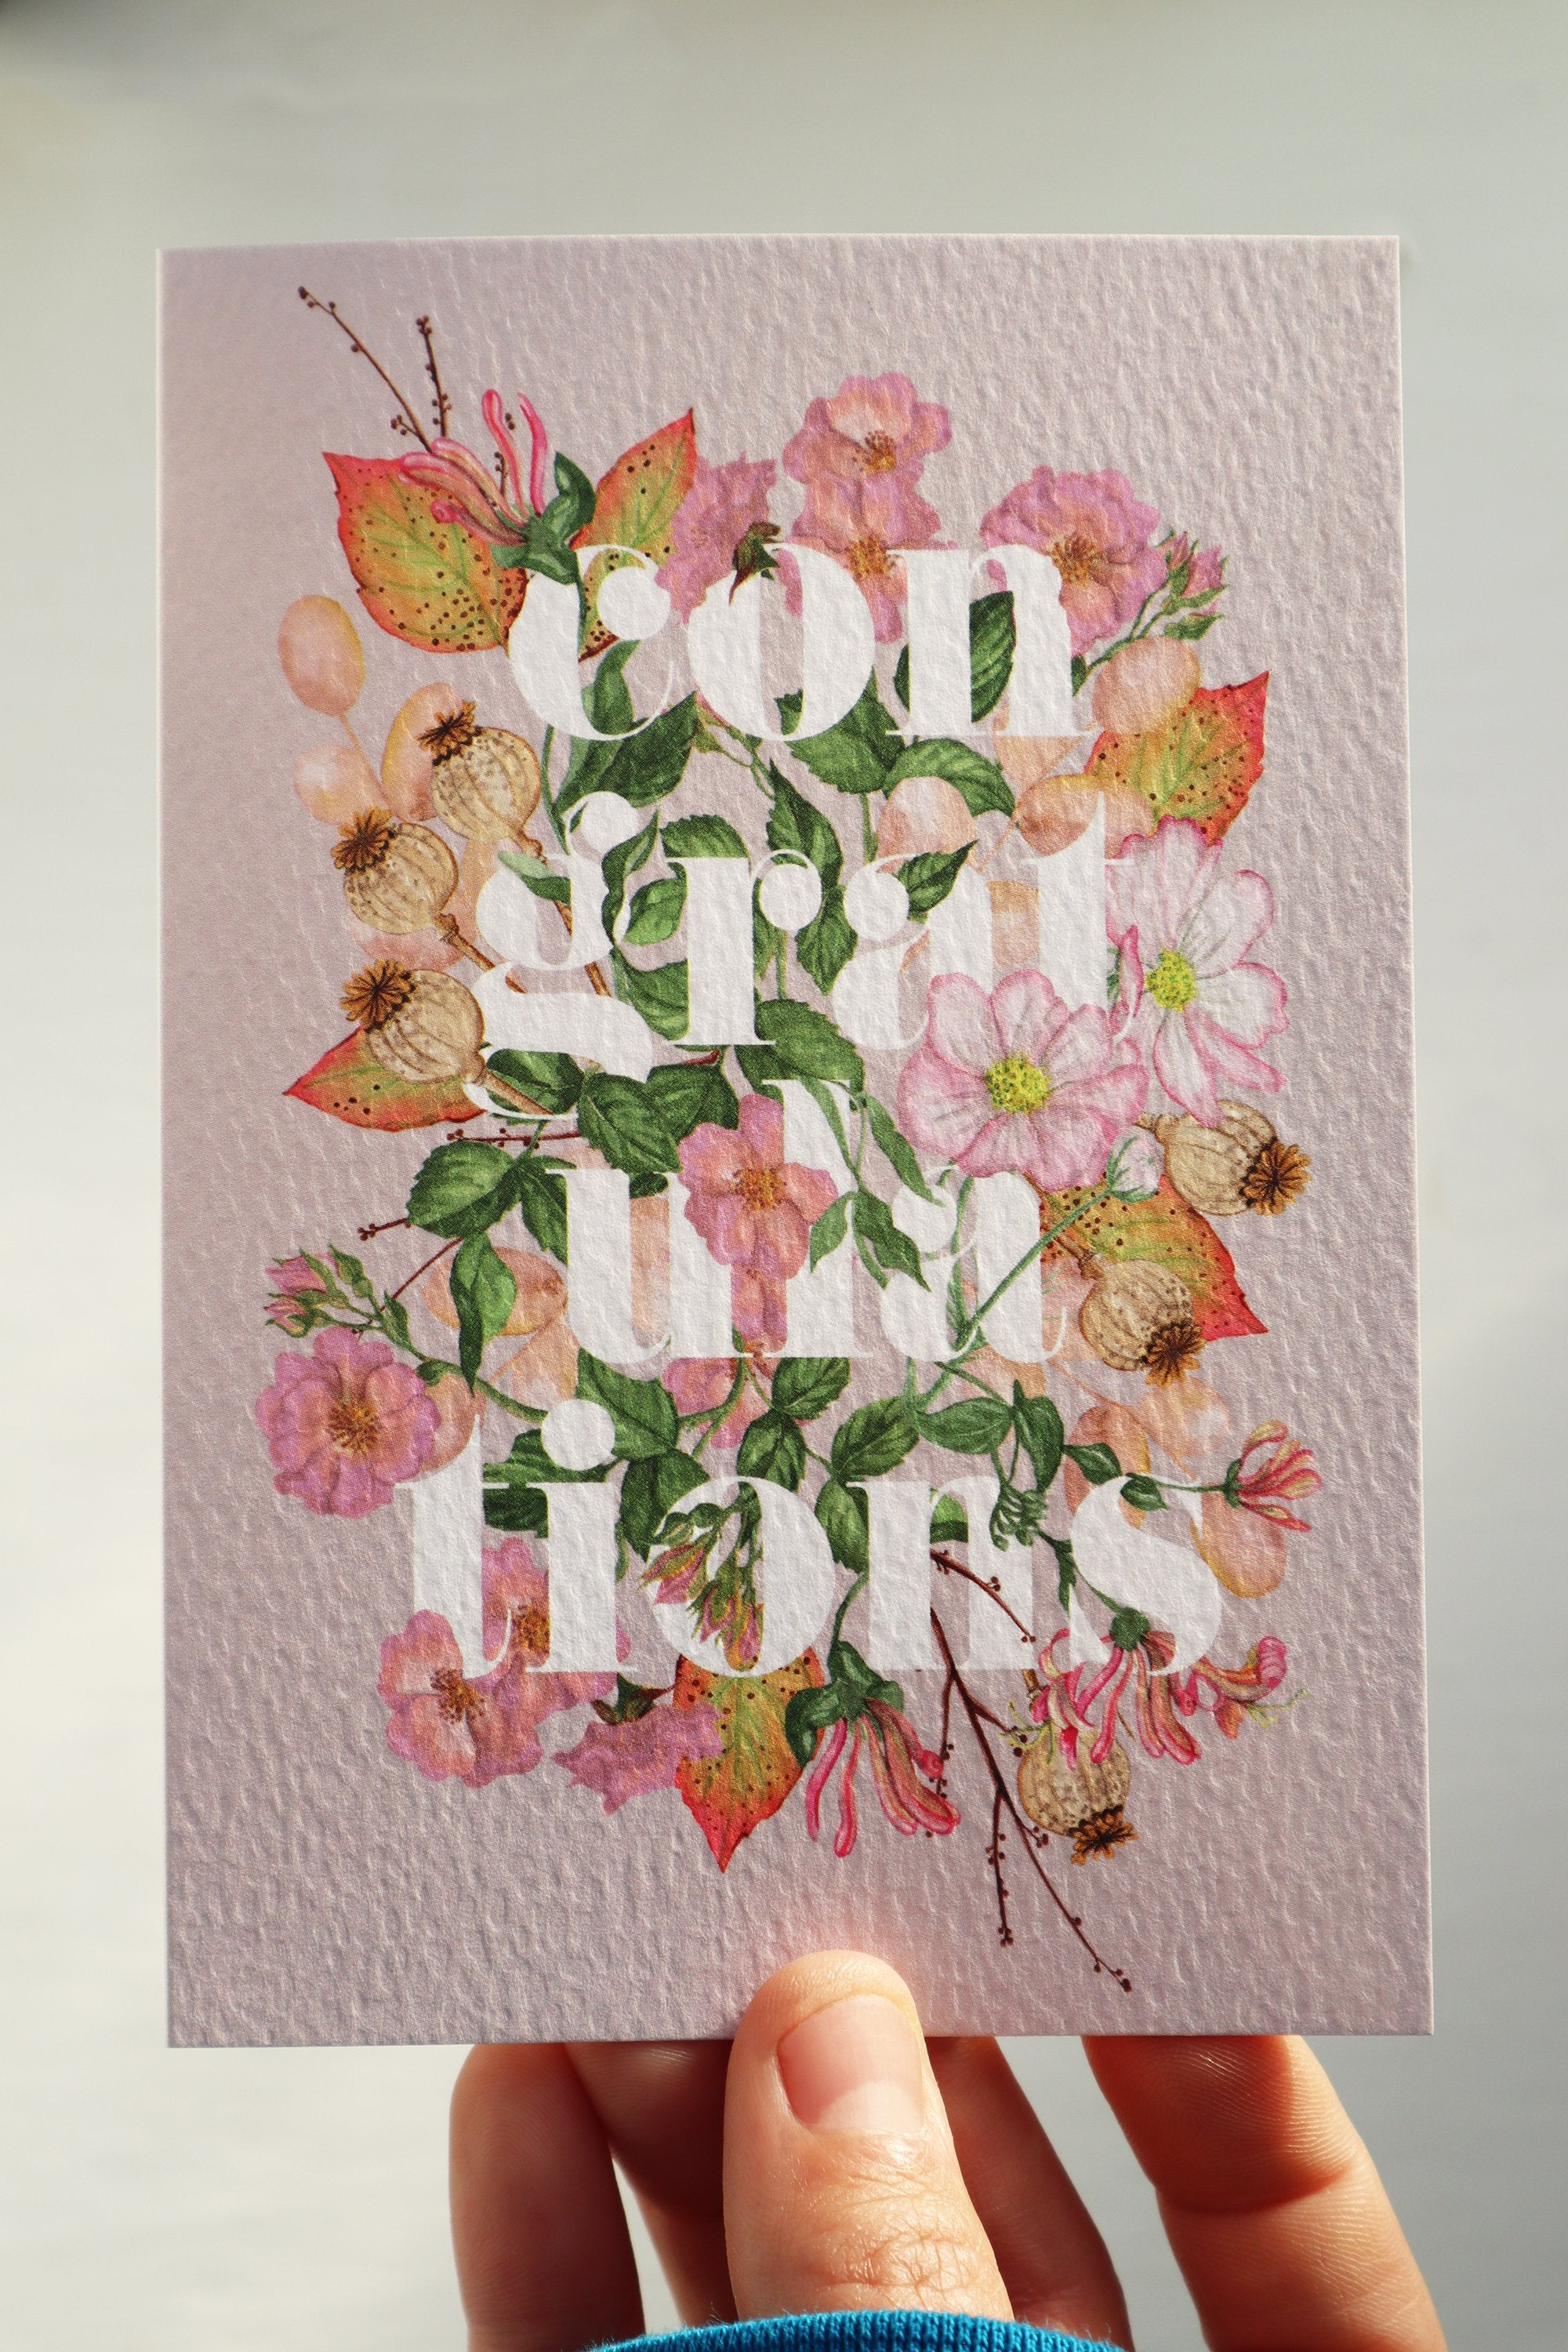 'Congratulations' Luxury Botanical Greetings Card